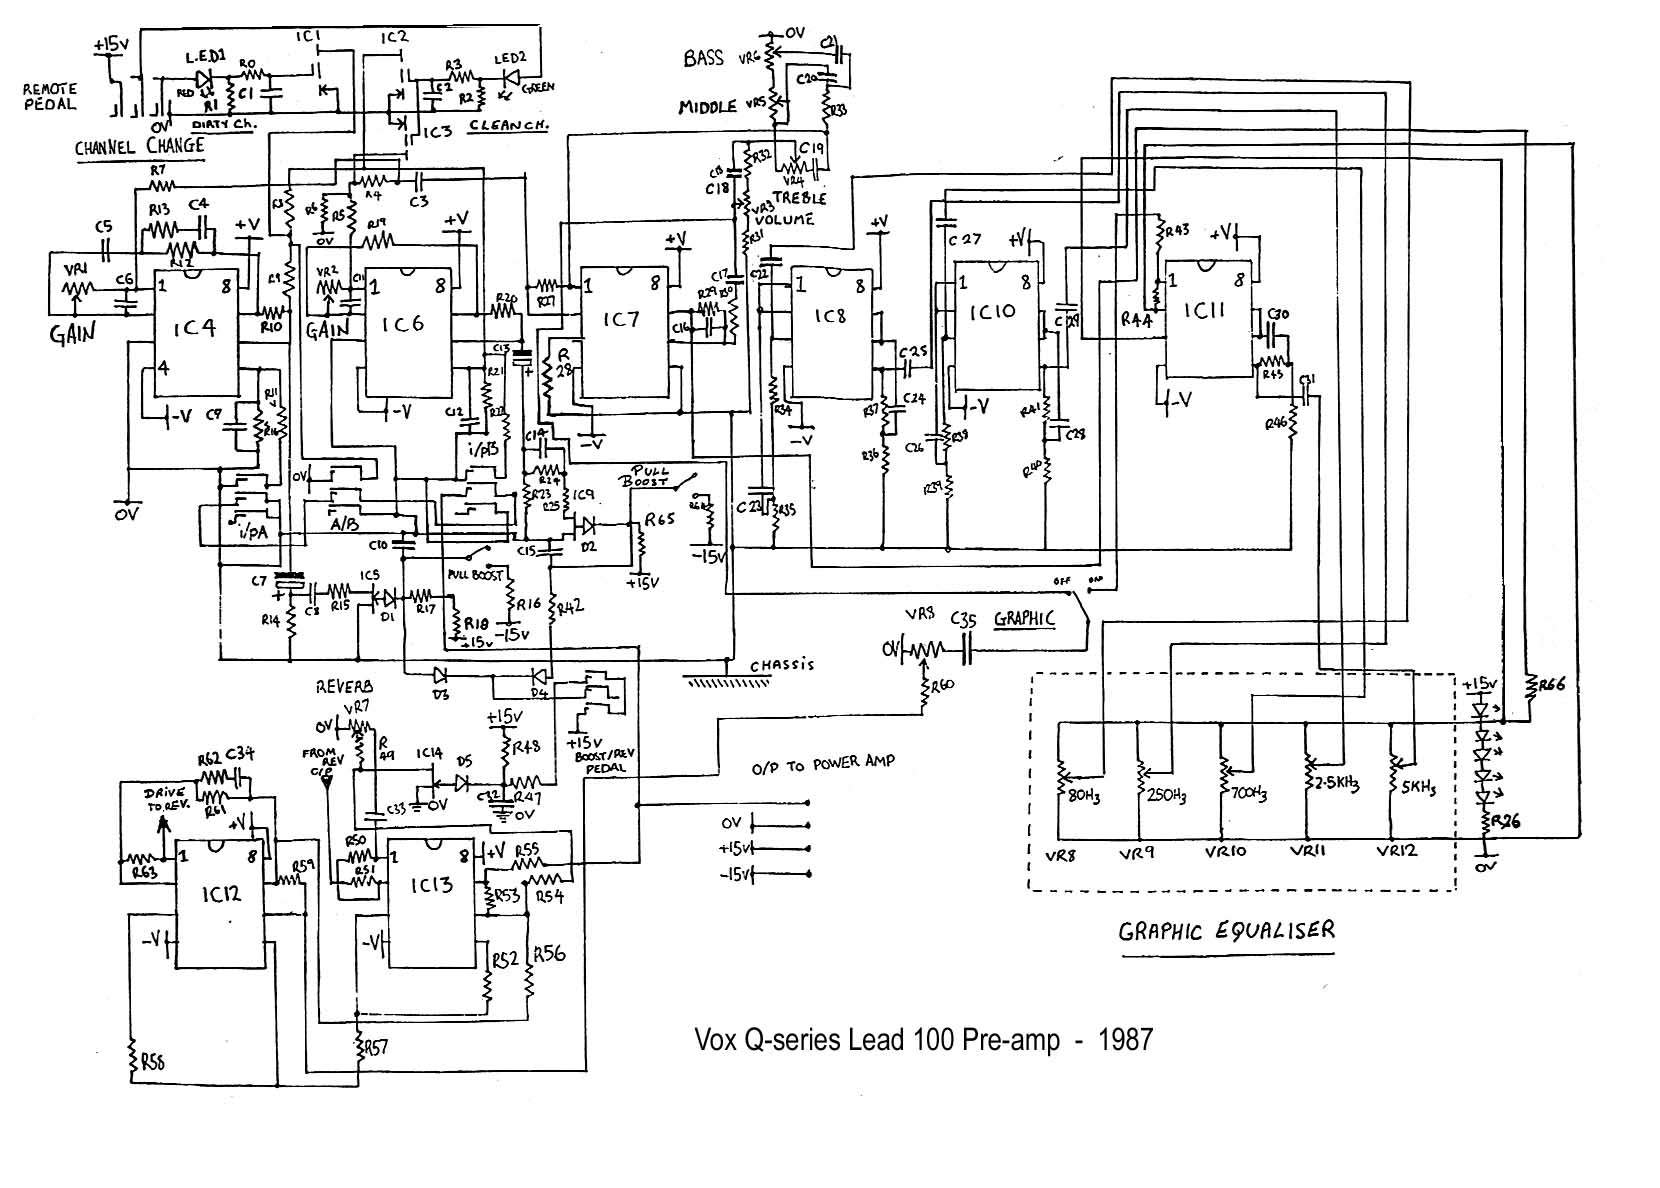 Dust Collector Wiring Diagram Reed Switches further Squier Telecaster Wiring Diagram in addition 19 furthermore Wiring Diagrams Strat Cool additionally Take The Lead Bumper Book Alto Saxophone. on fender lead series guitar